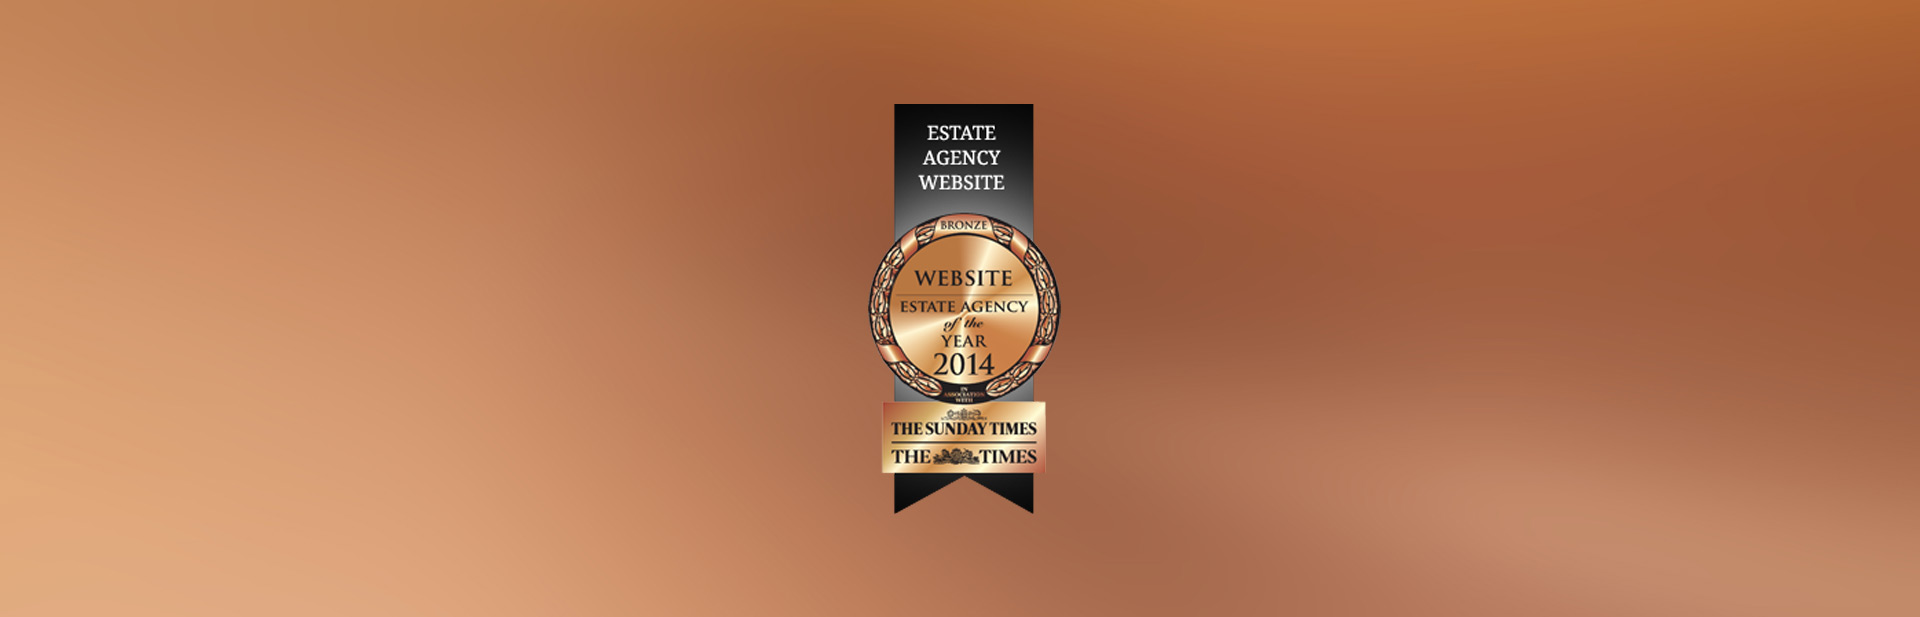 Estate Agent Website Award